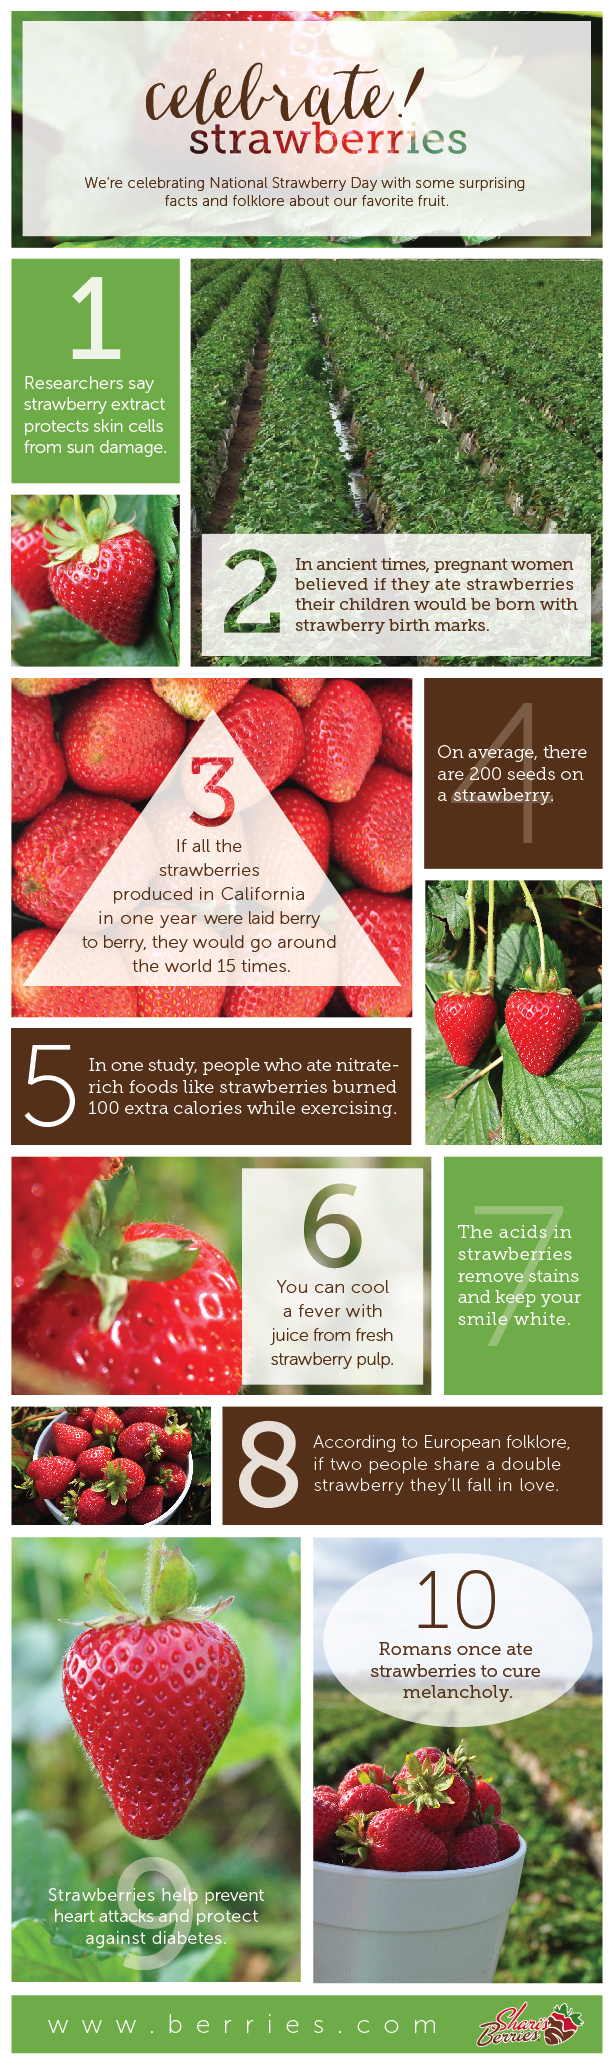 Facts and folklore about strawberries | National Strawberry Day | Infographic | The Momiverse